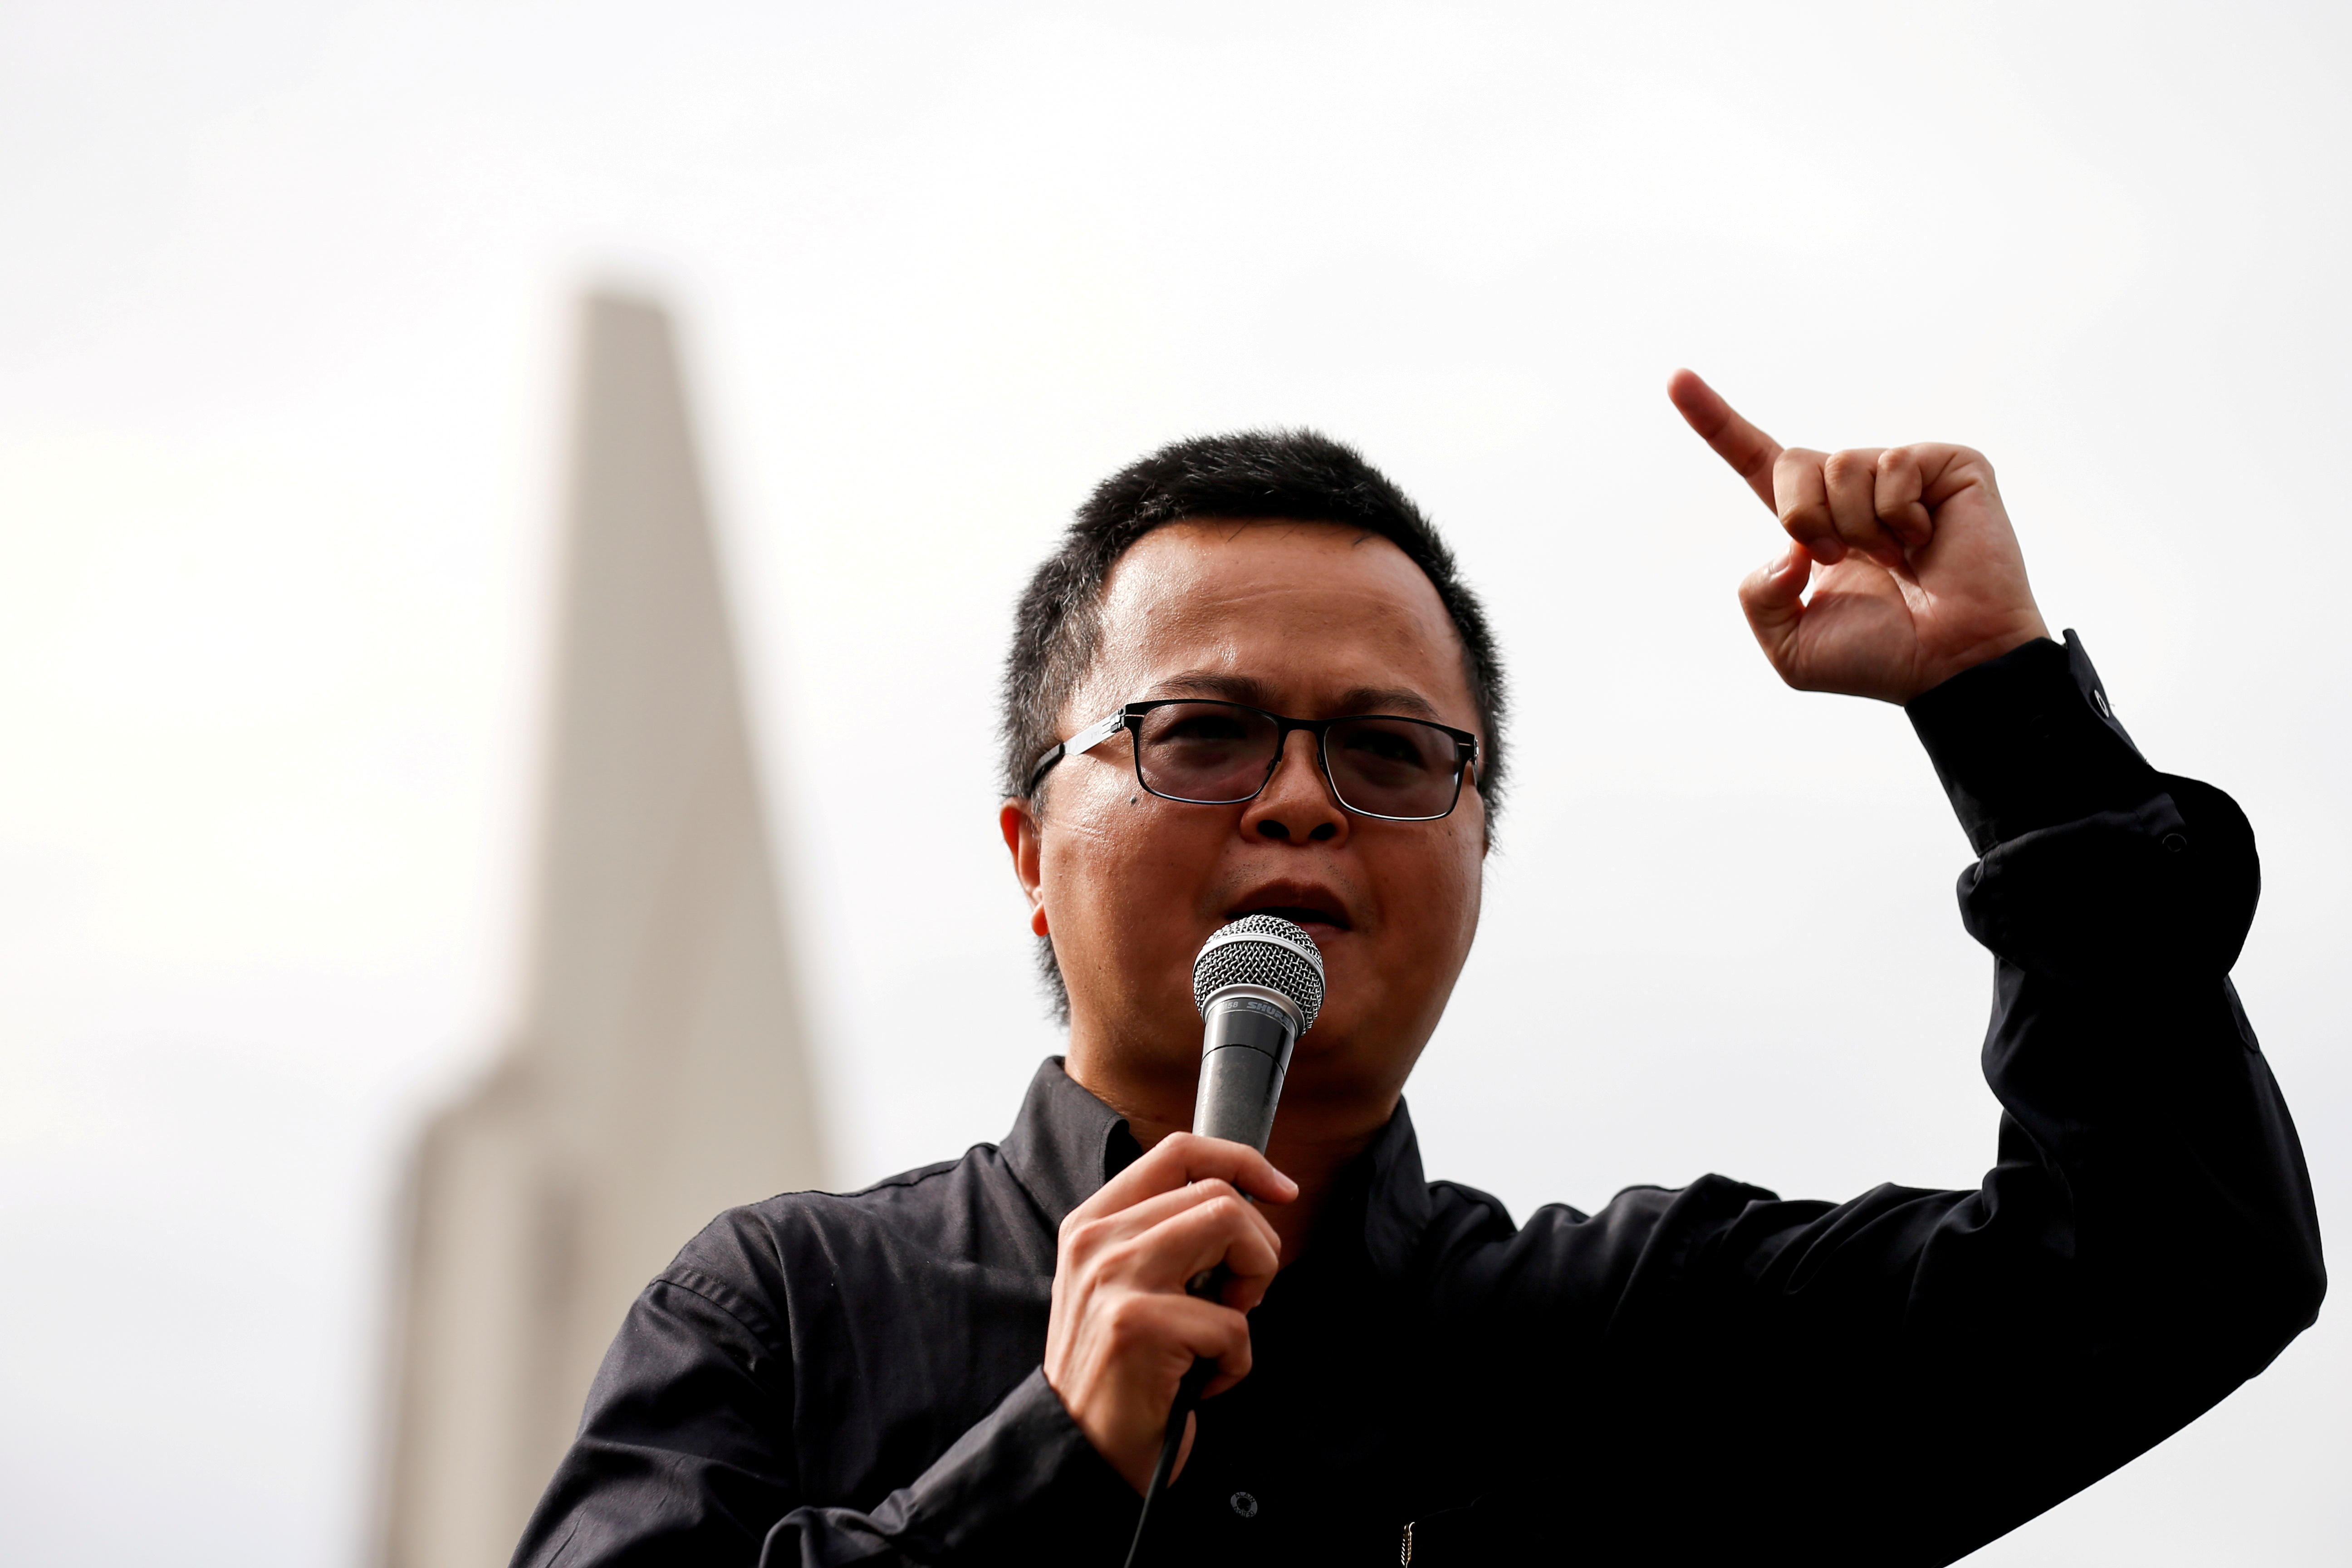 Human rights lawyer Arnon Nampa speaks during a Thai anti-government mass protest, on the 47th anniversary of the 1973 student uprising, in front of the Democracy monument, in Bangkok, Thailand October 14, 2020. REUTERS/Soe Zeya Tun/File Photo